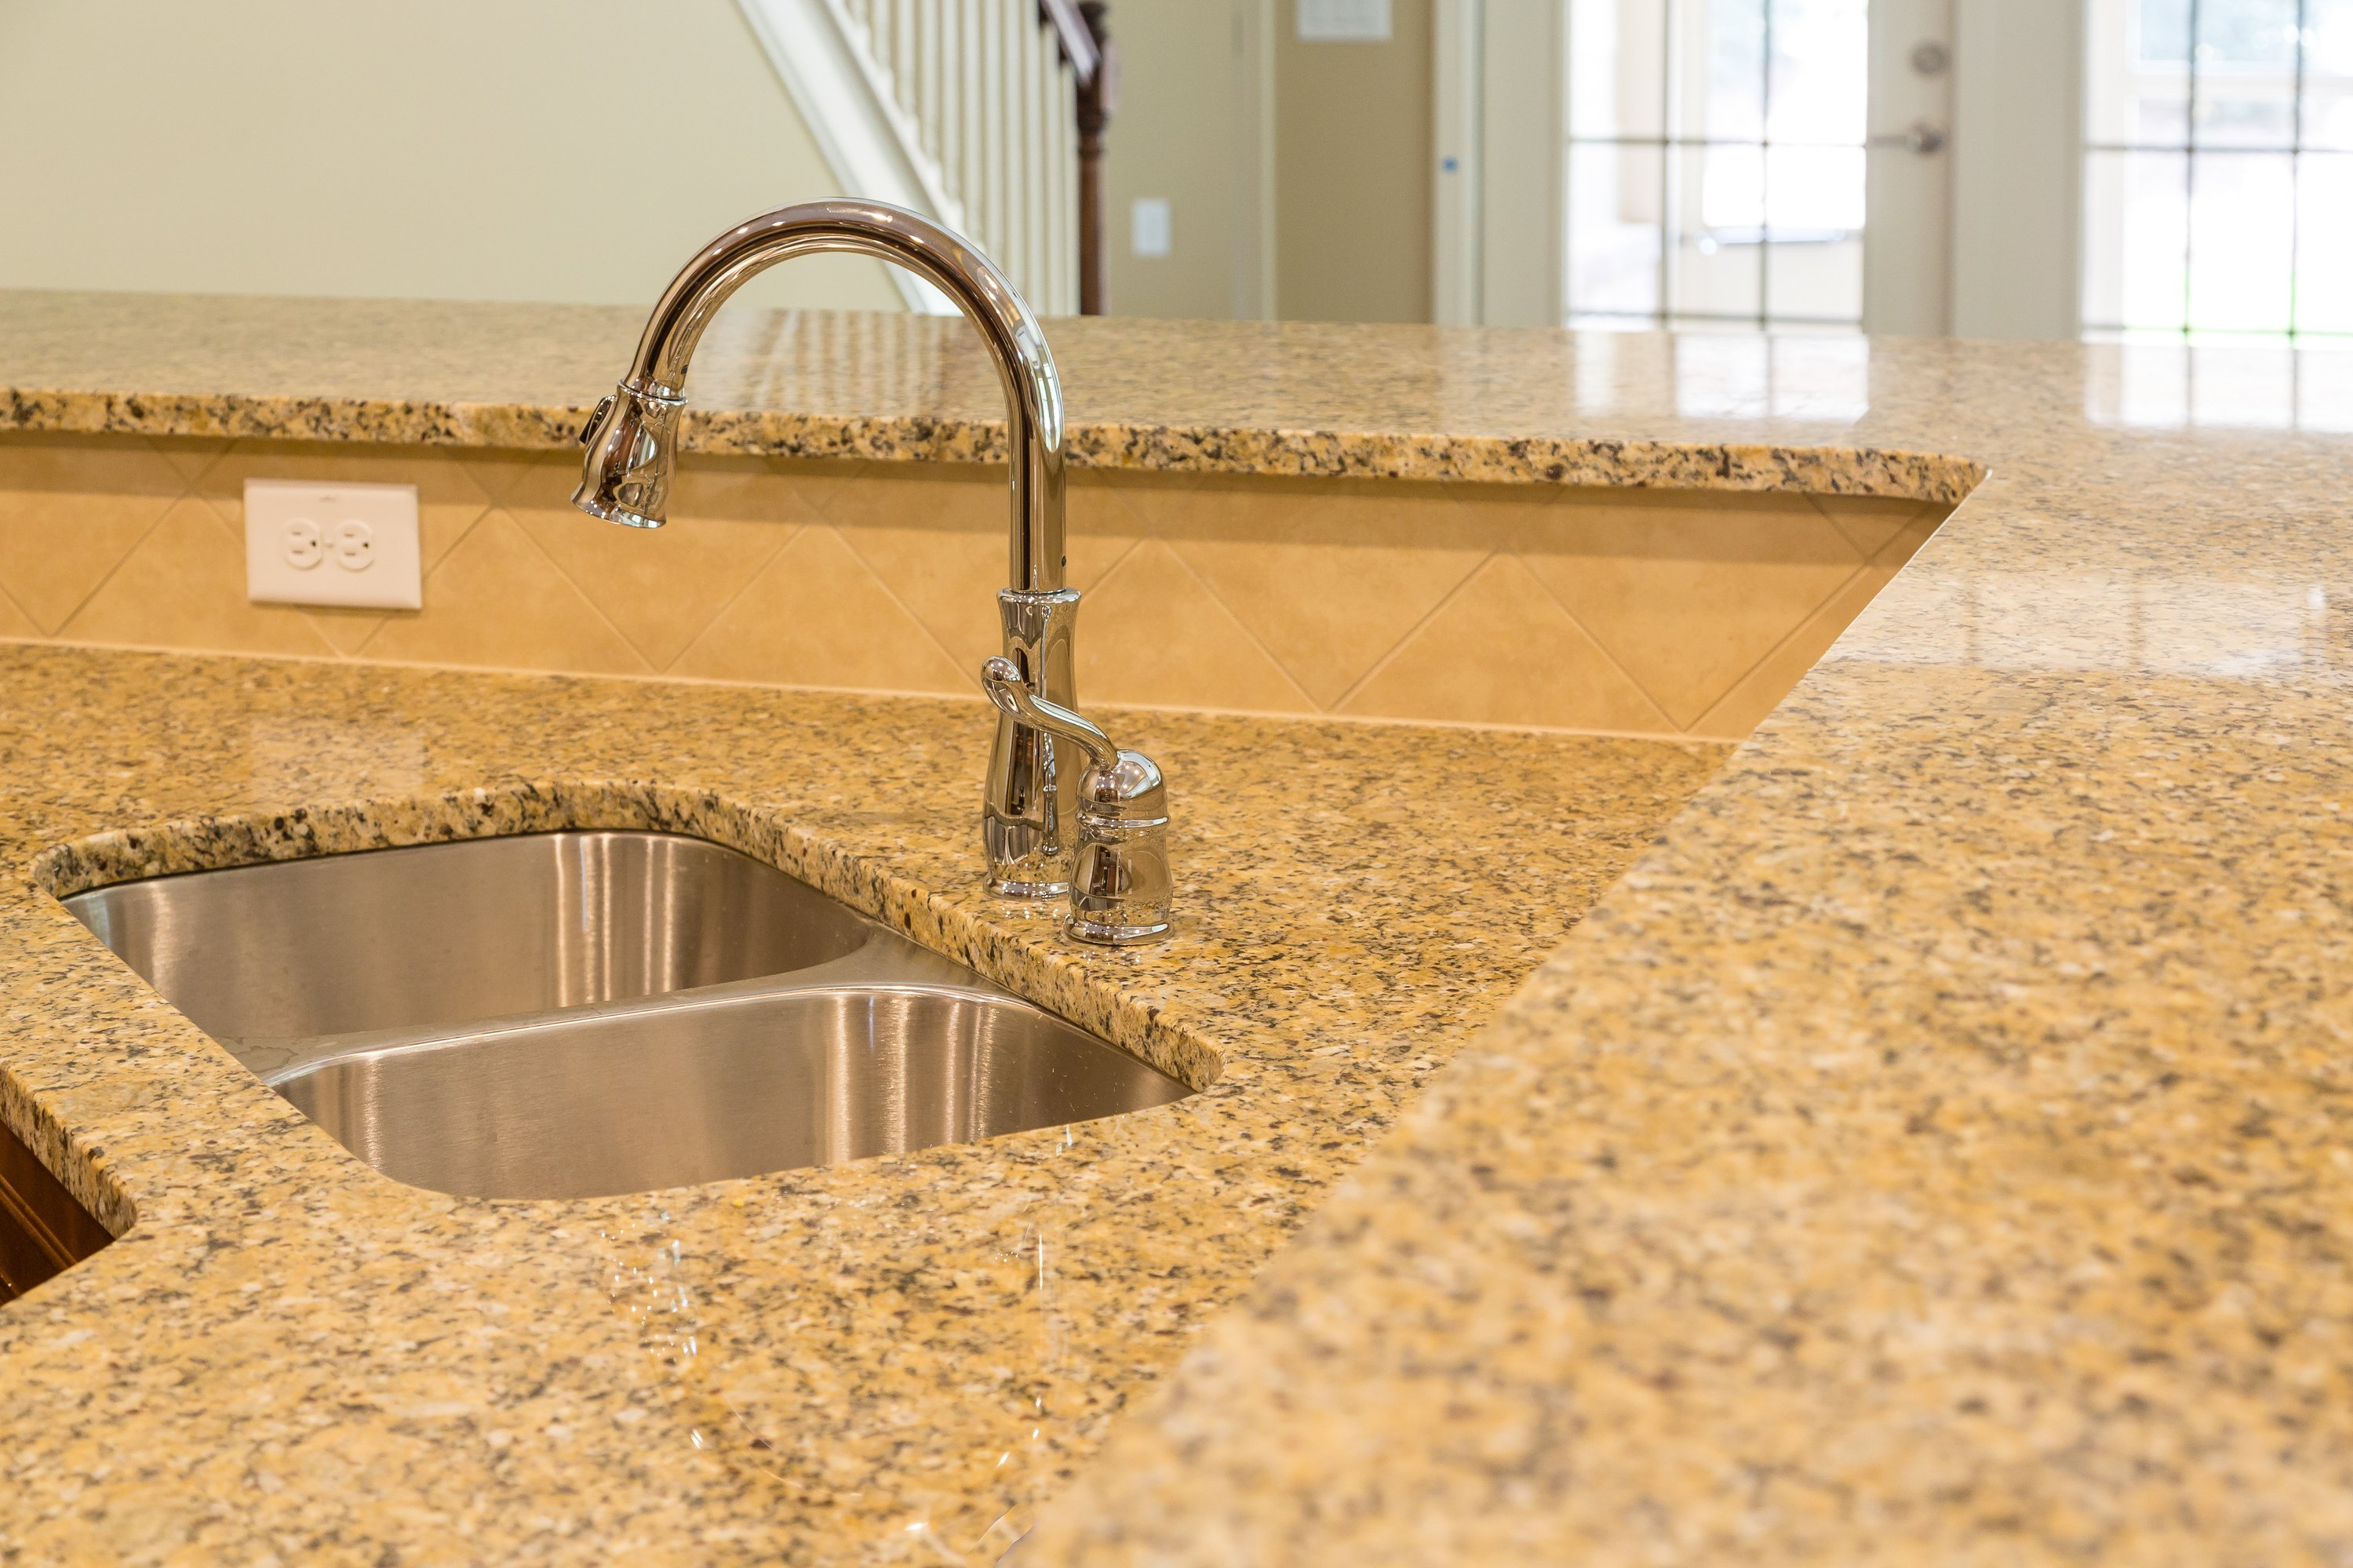 Countertops in a home located in Cedar Rapids, IA